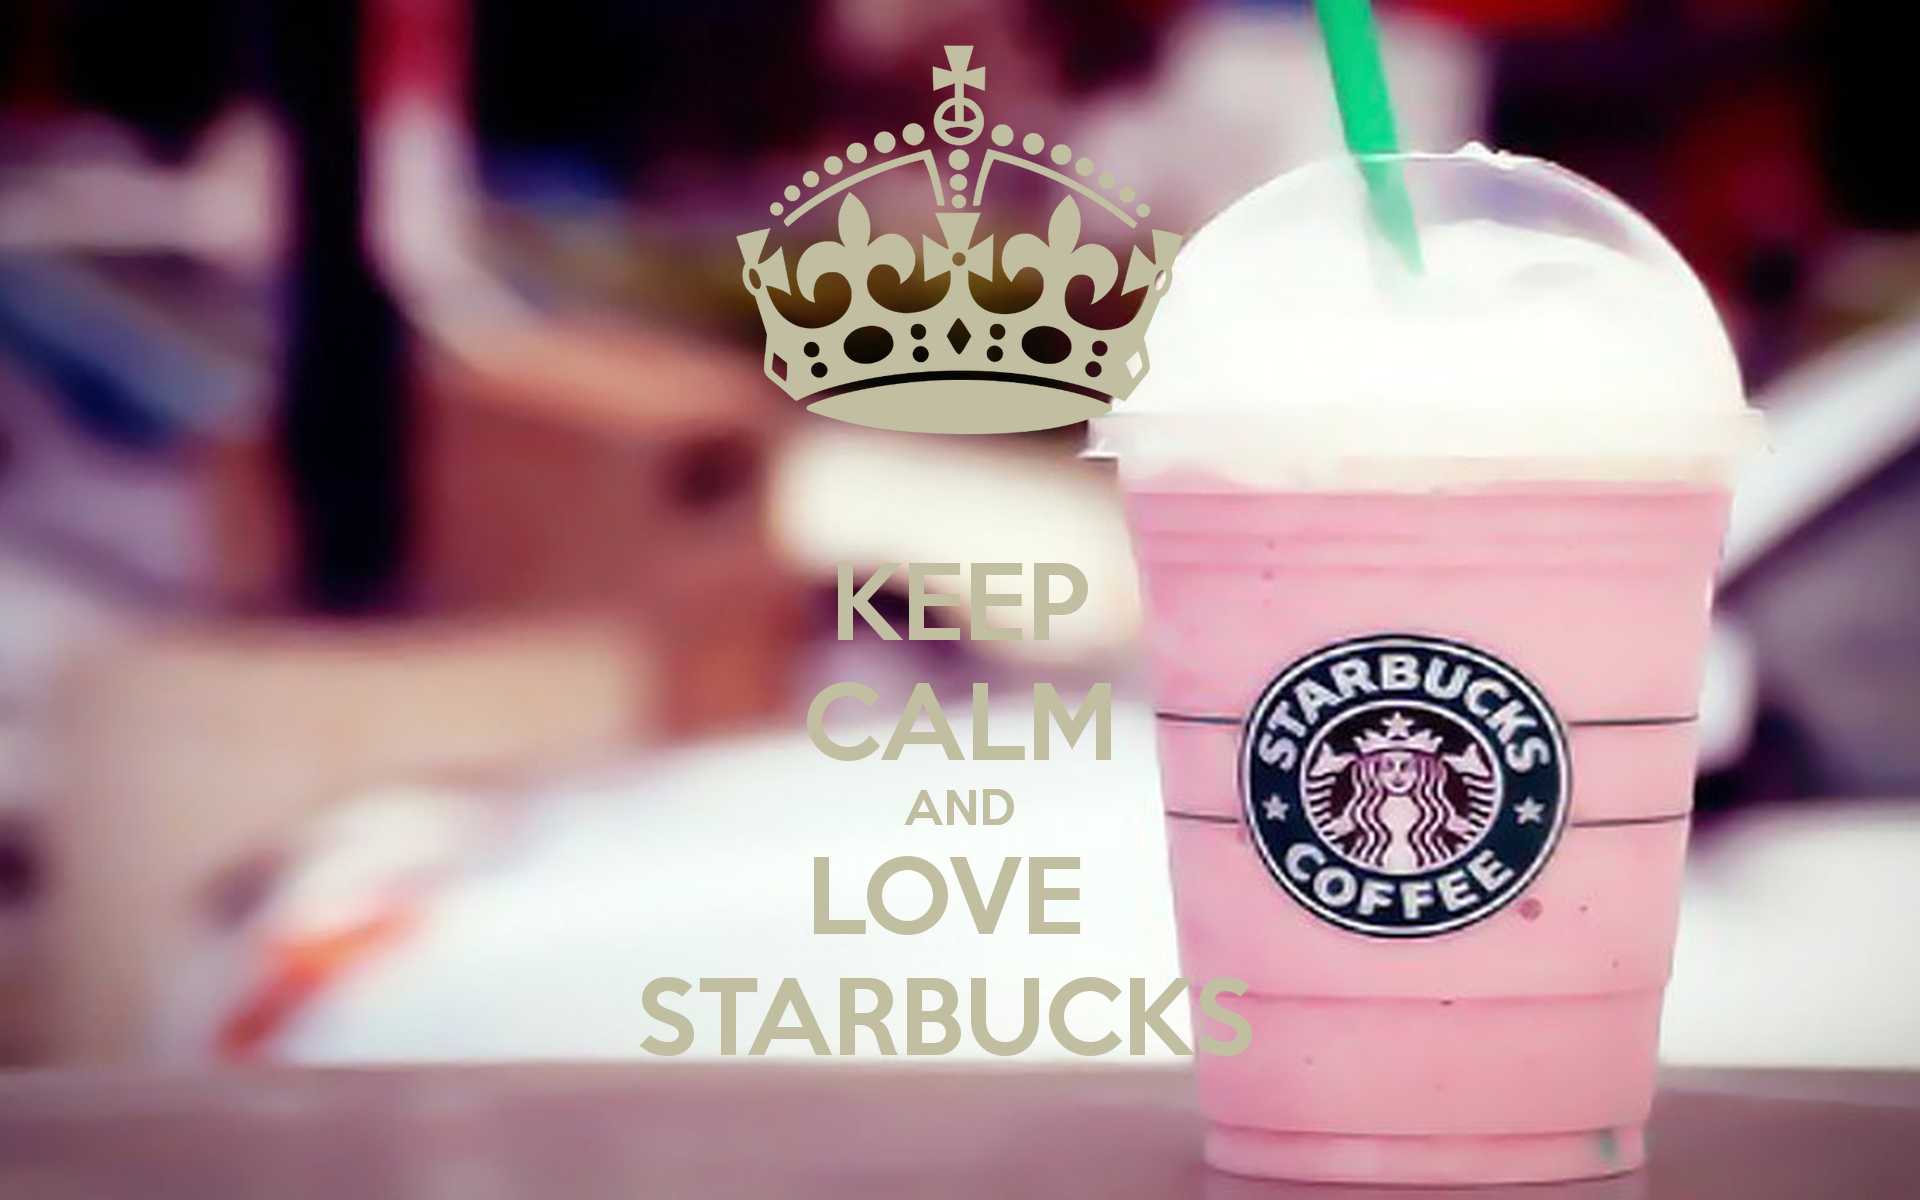 Keep Calm And Love Starbucks 177 Png Starbucks Wallpaper Starbucks Drinks Starbucks